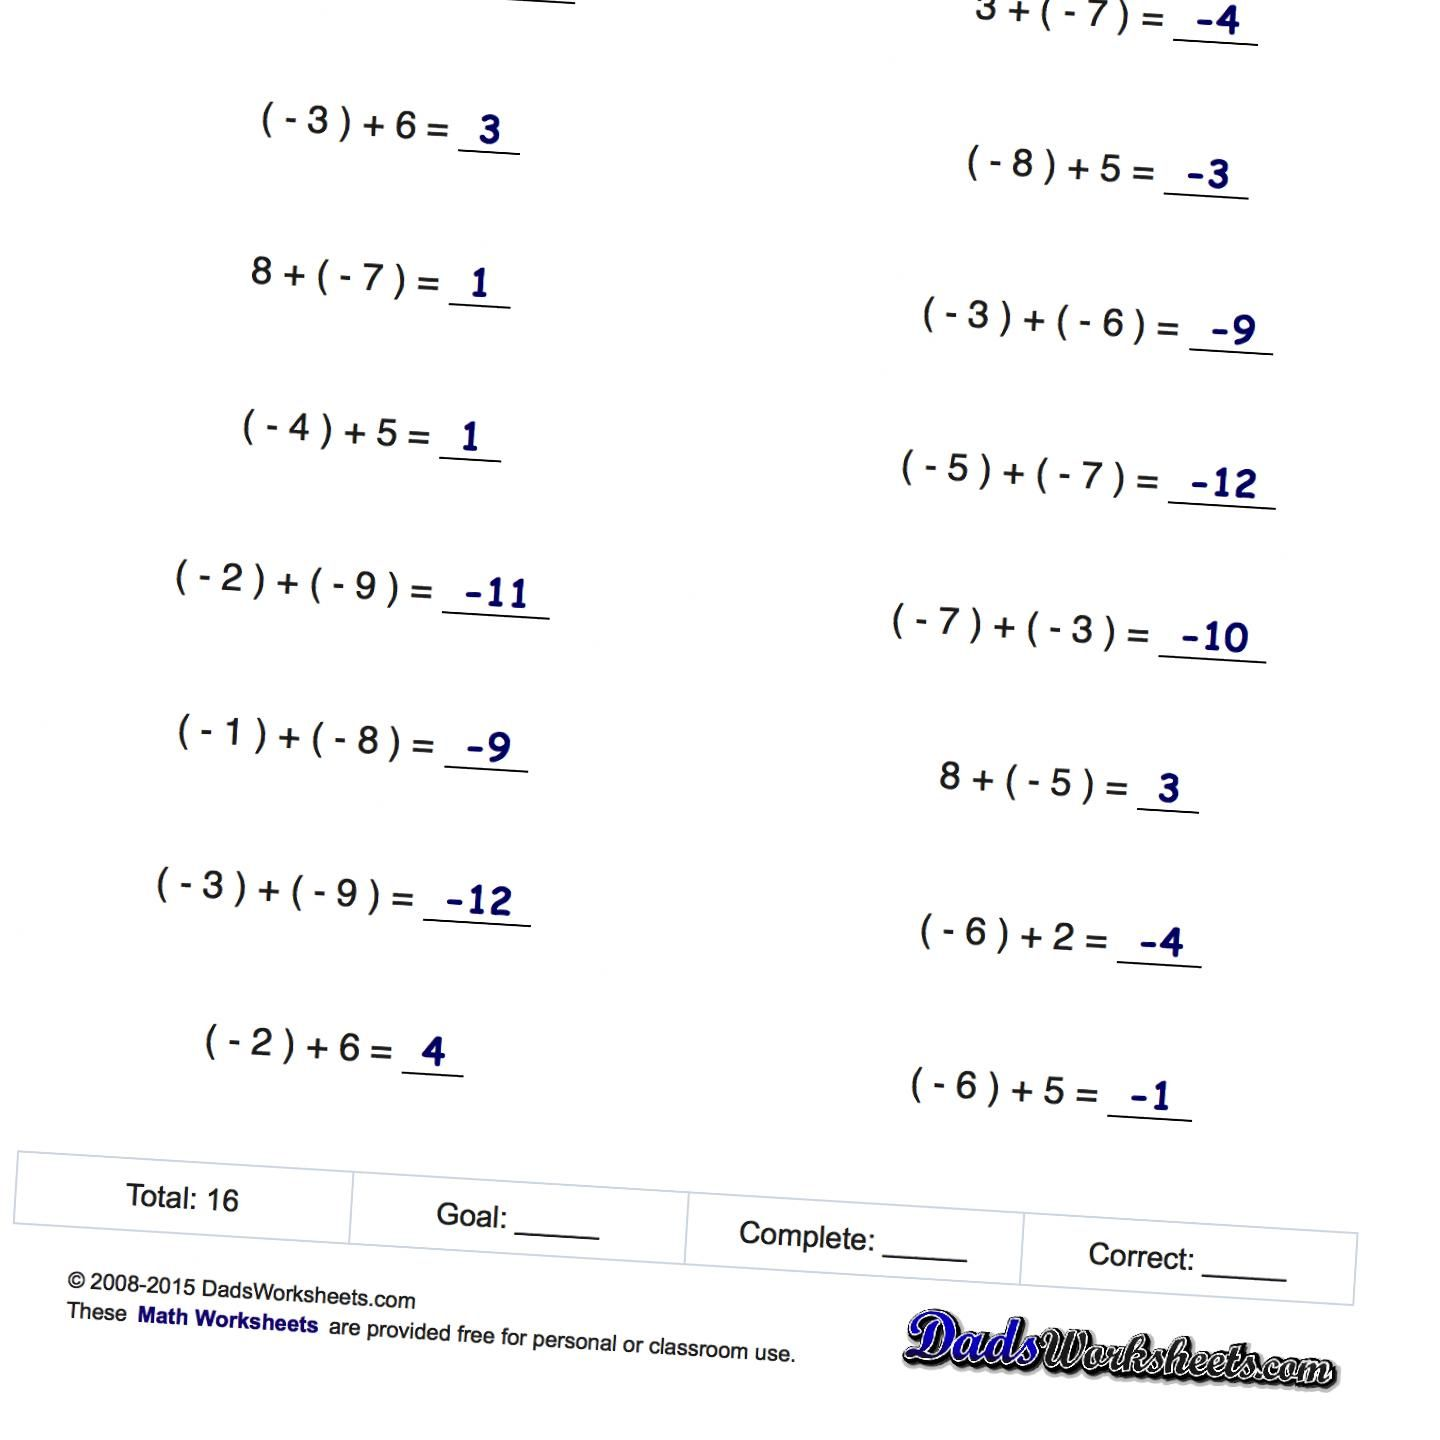 worksheet Adding And Subtracting Negative Numbers Worksheets negative numbers addition and subtraction math worksheets adding subtracting worksheets